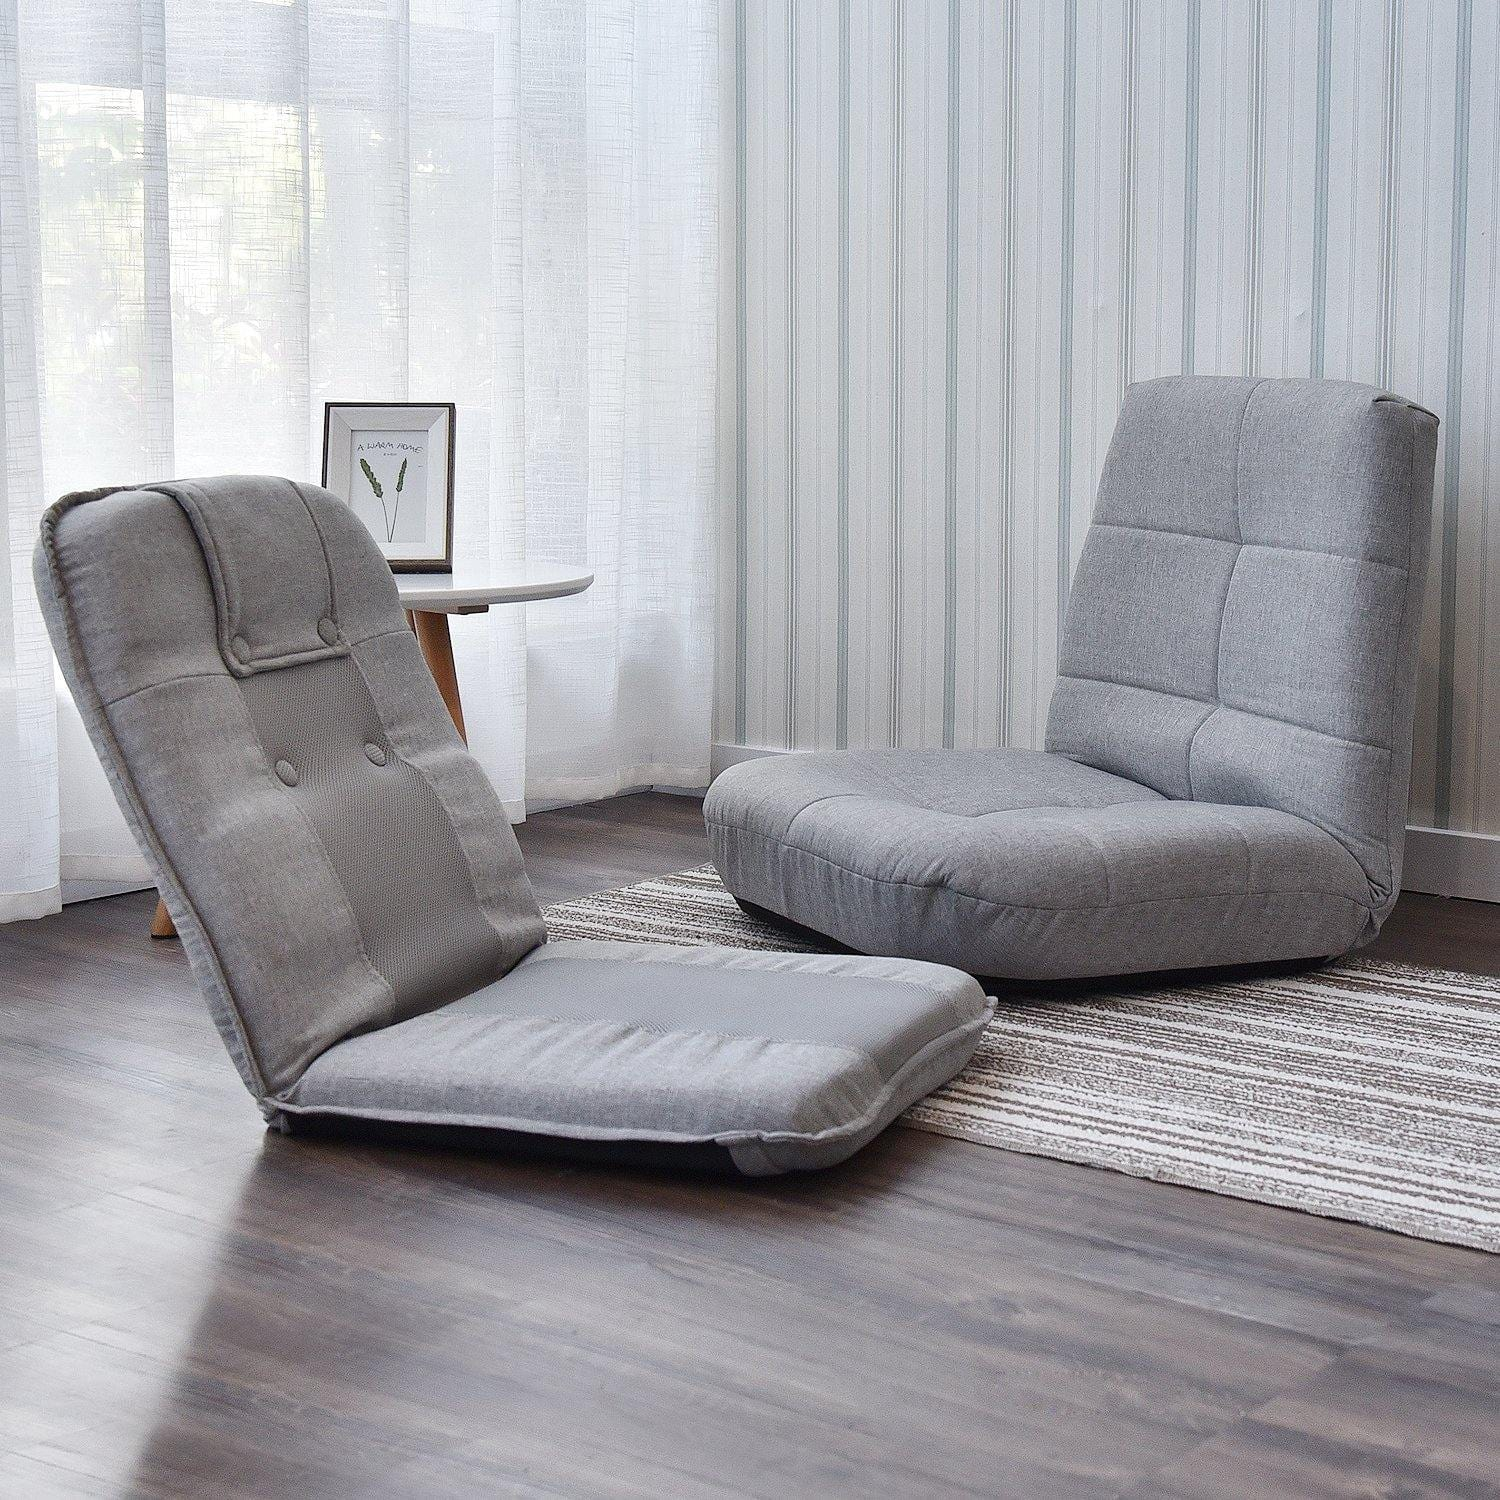 Newest Floor Sofa - Elecwish